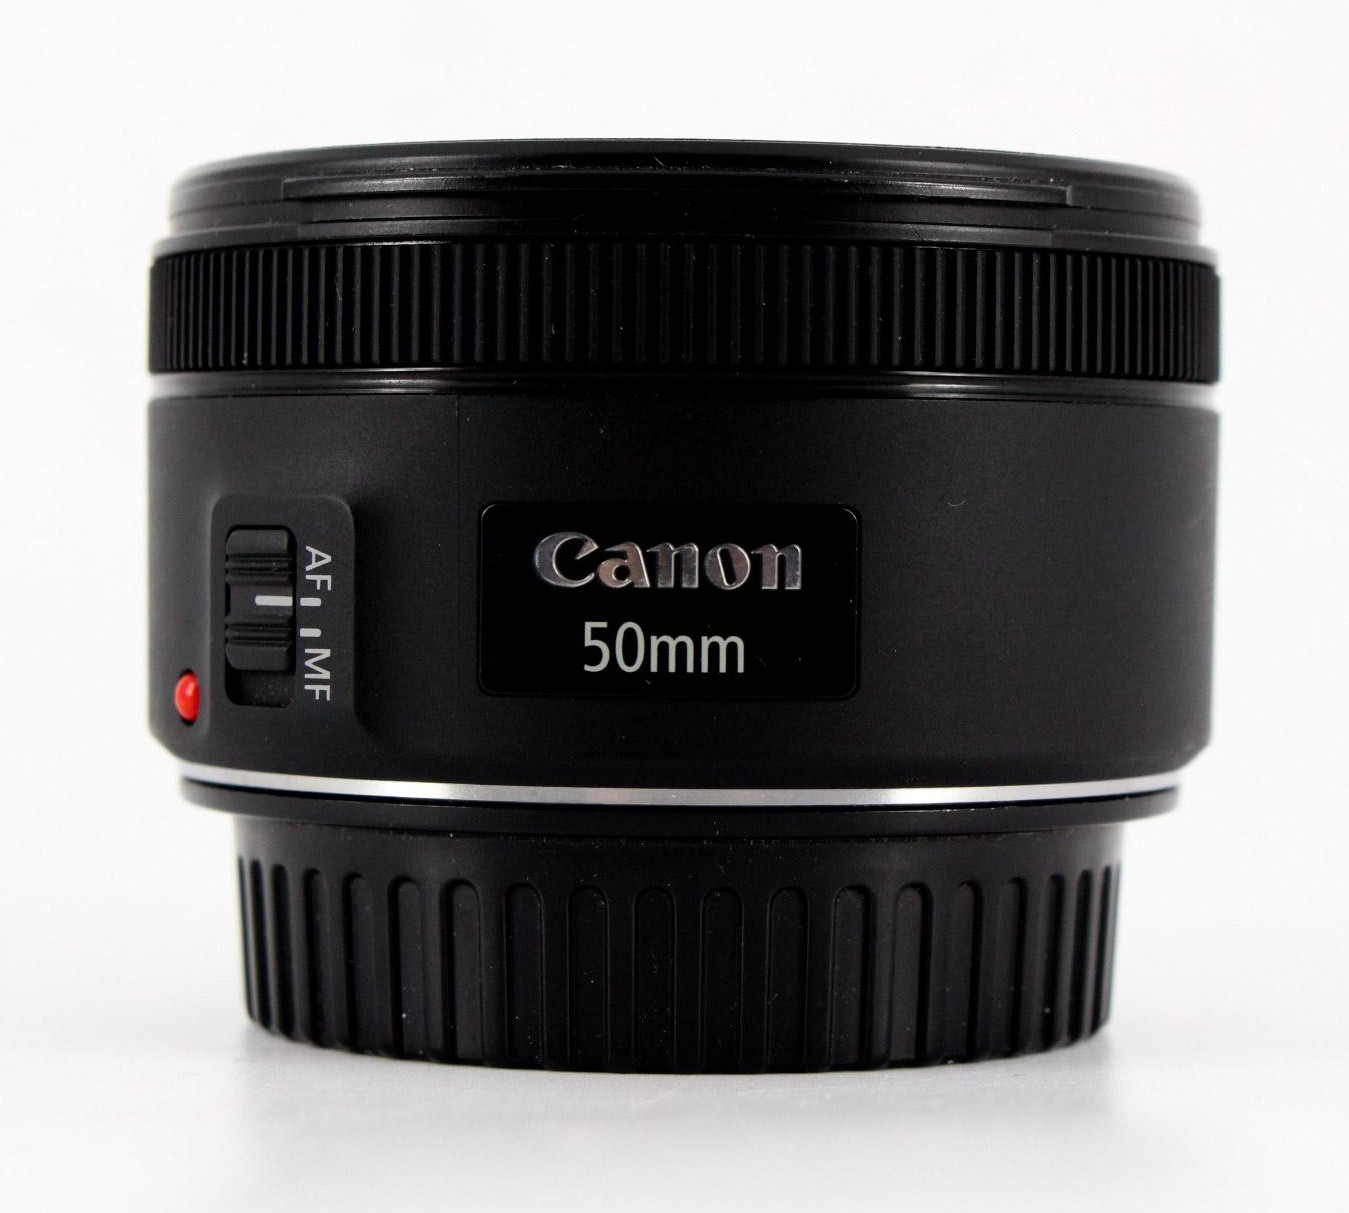 canon 50mm f1.8 stm image